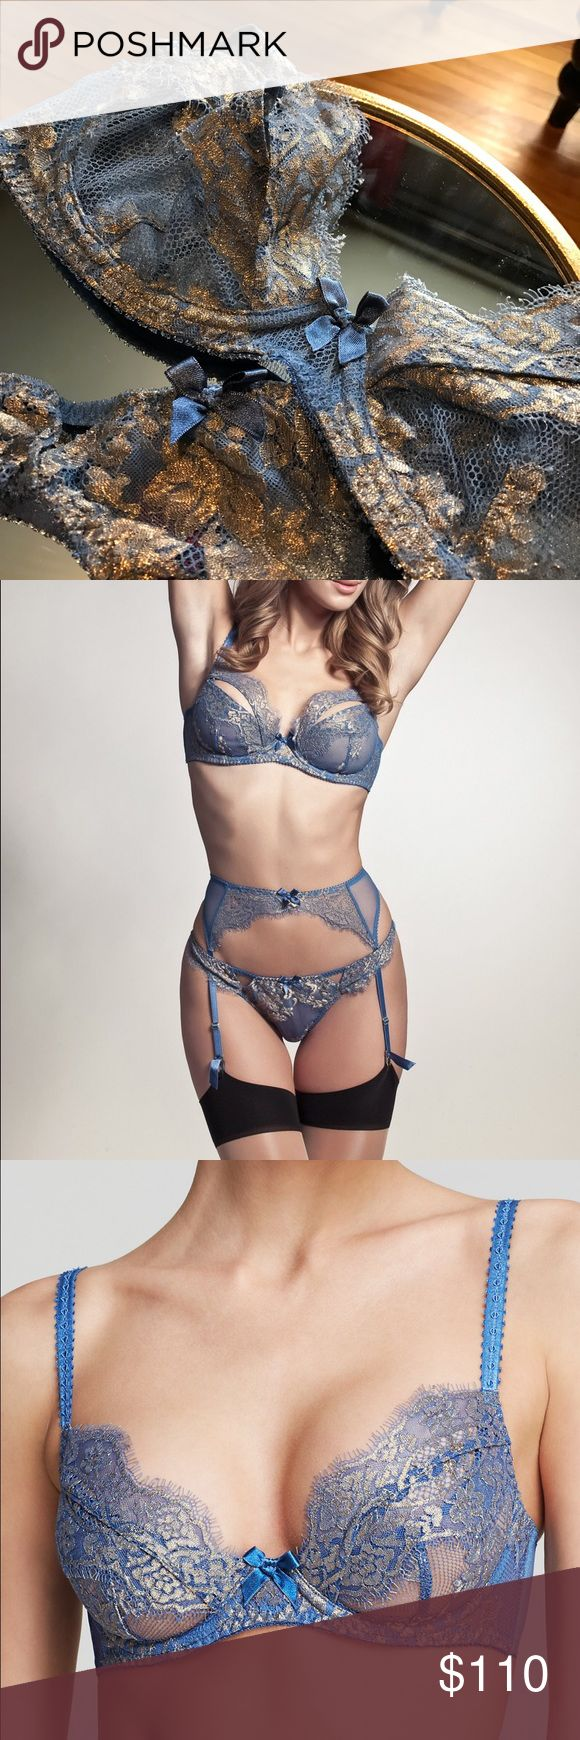 L'agent provocateur blue & gold lace lingerie set Gorgeous luxurious looking powder blue and gold lingerie set from L'agent Agent Provocateur. I've never worn the panties and the bra I've worn once then got it professionally cleaned. It's a beautiful set and I snatched it up when I saw it, but it's small on me. The fabric is really quite stunning. open to offers 😊 the bra is 34D and the thong is XS. Excellent like new condition agent provocateur  Intimates & Sleepwear Bras